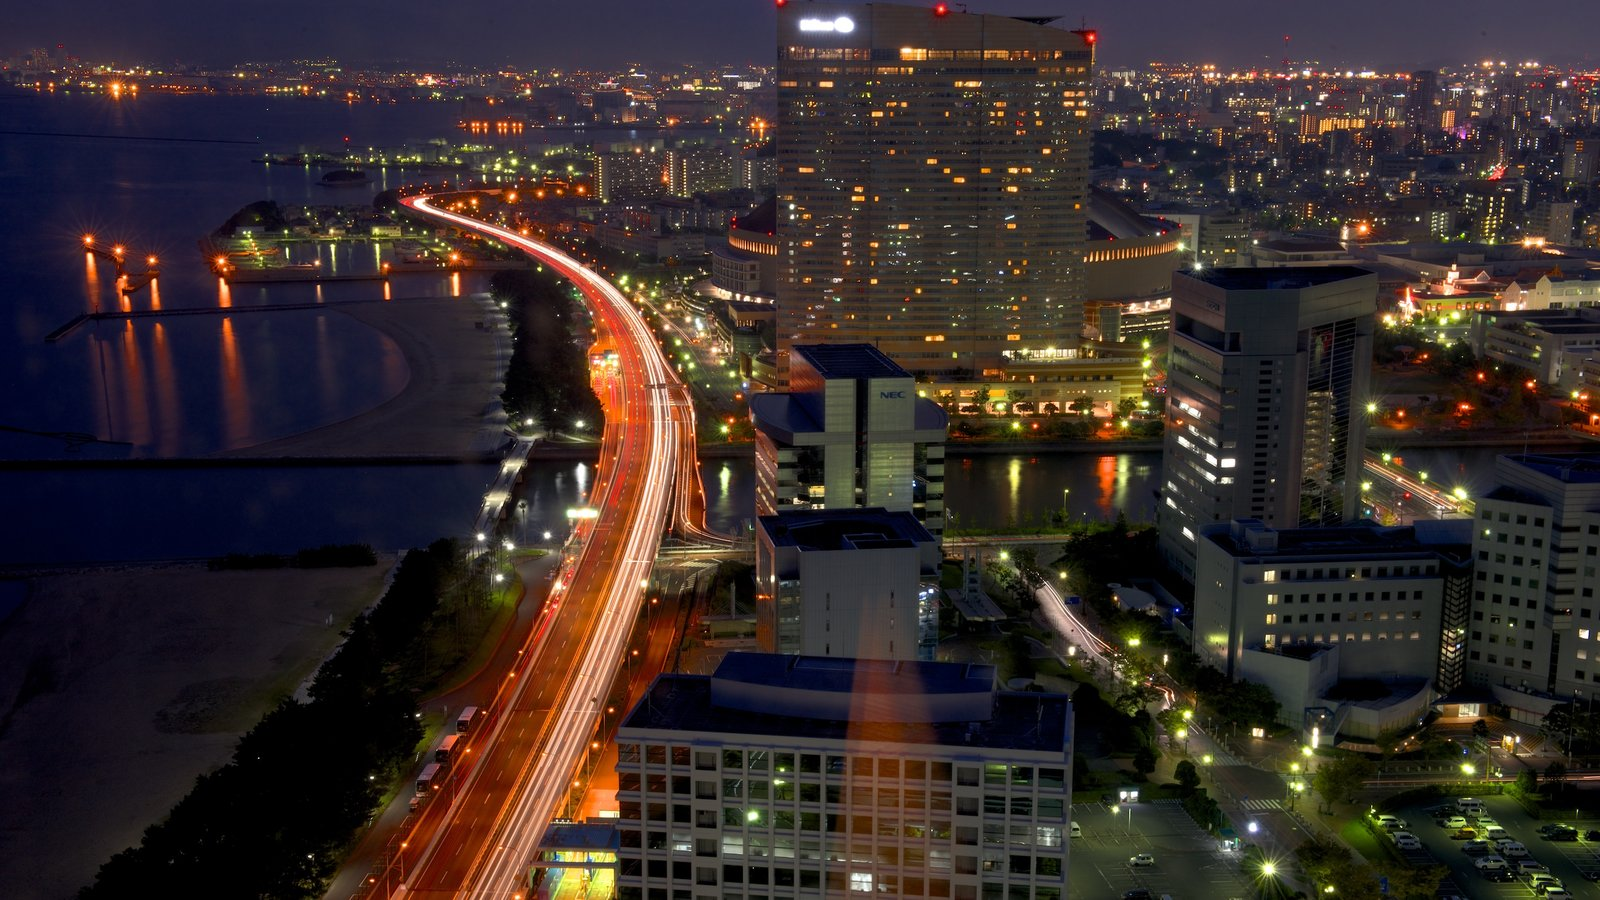 Fukuoka Tower showing a city and night scenes